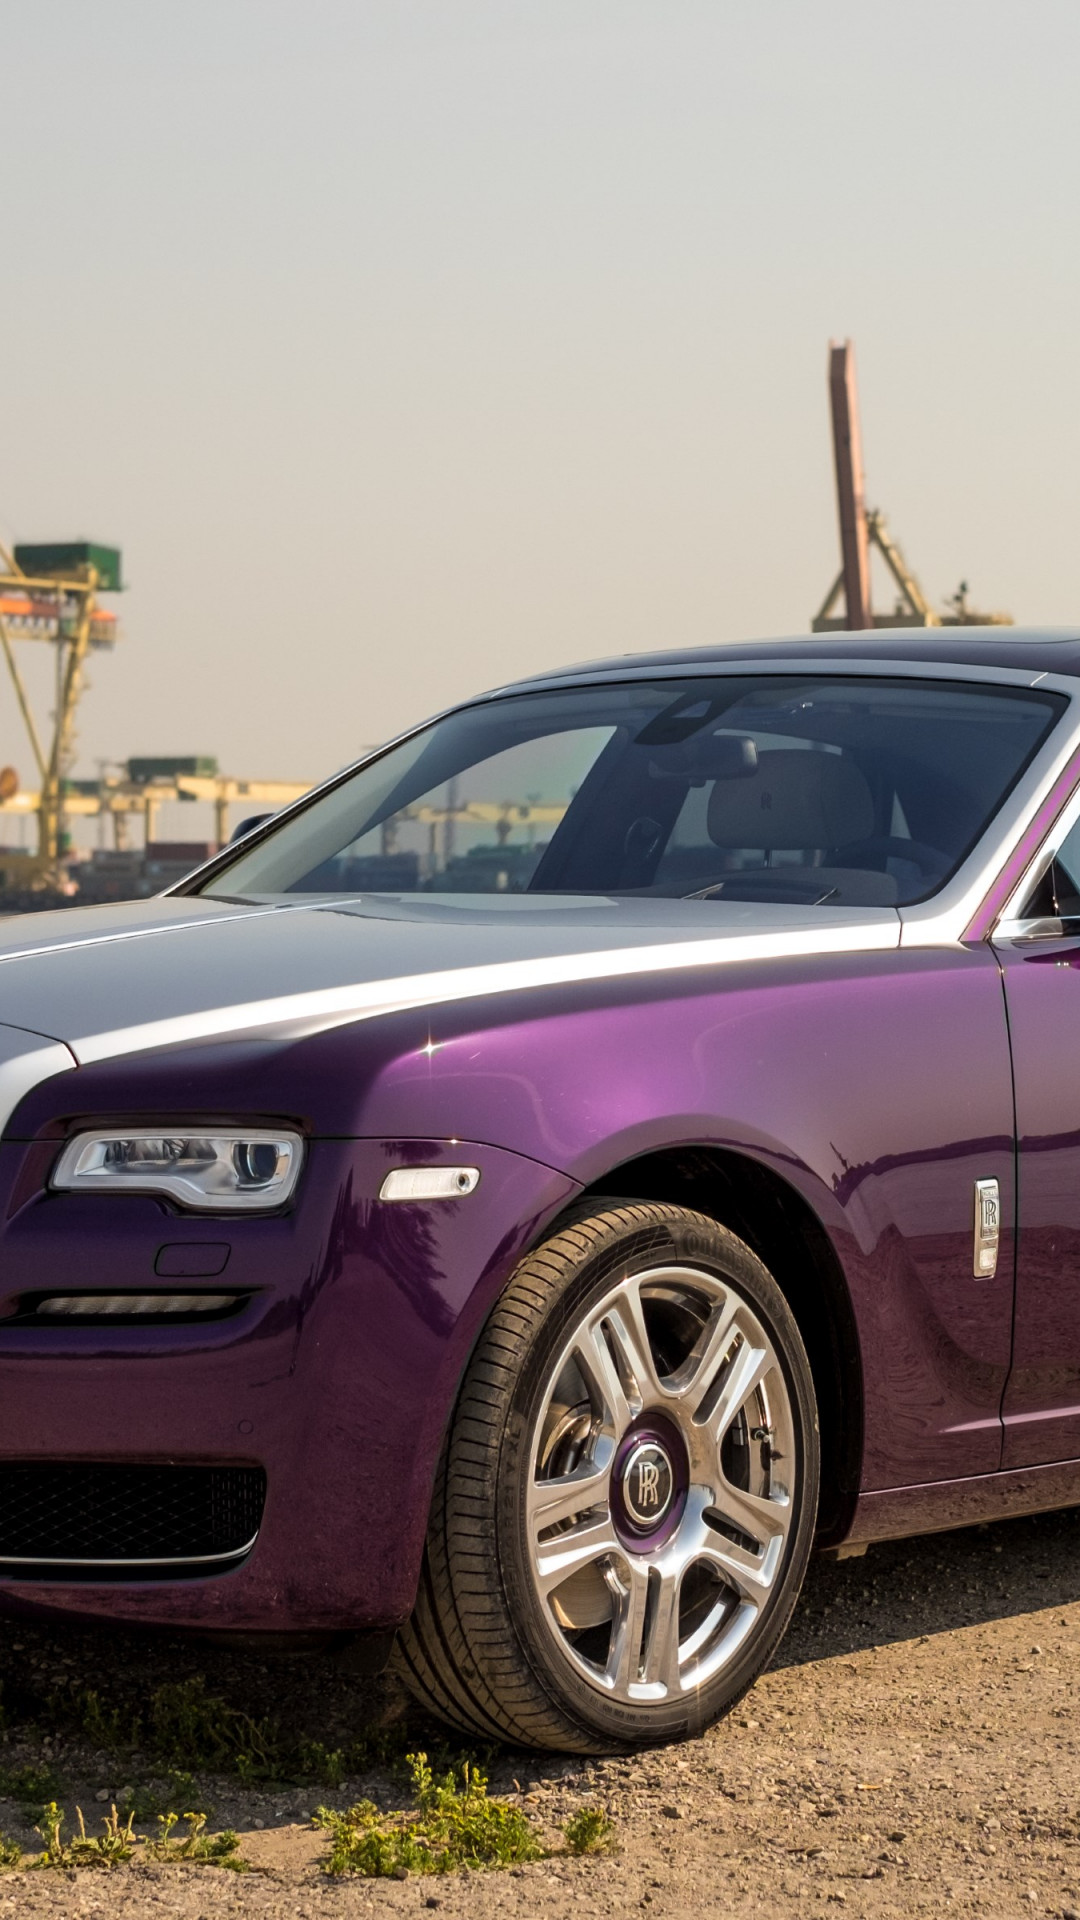 Rolls Royce Ghost | 1080x1920 wallpaper